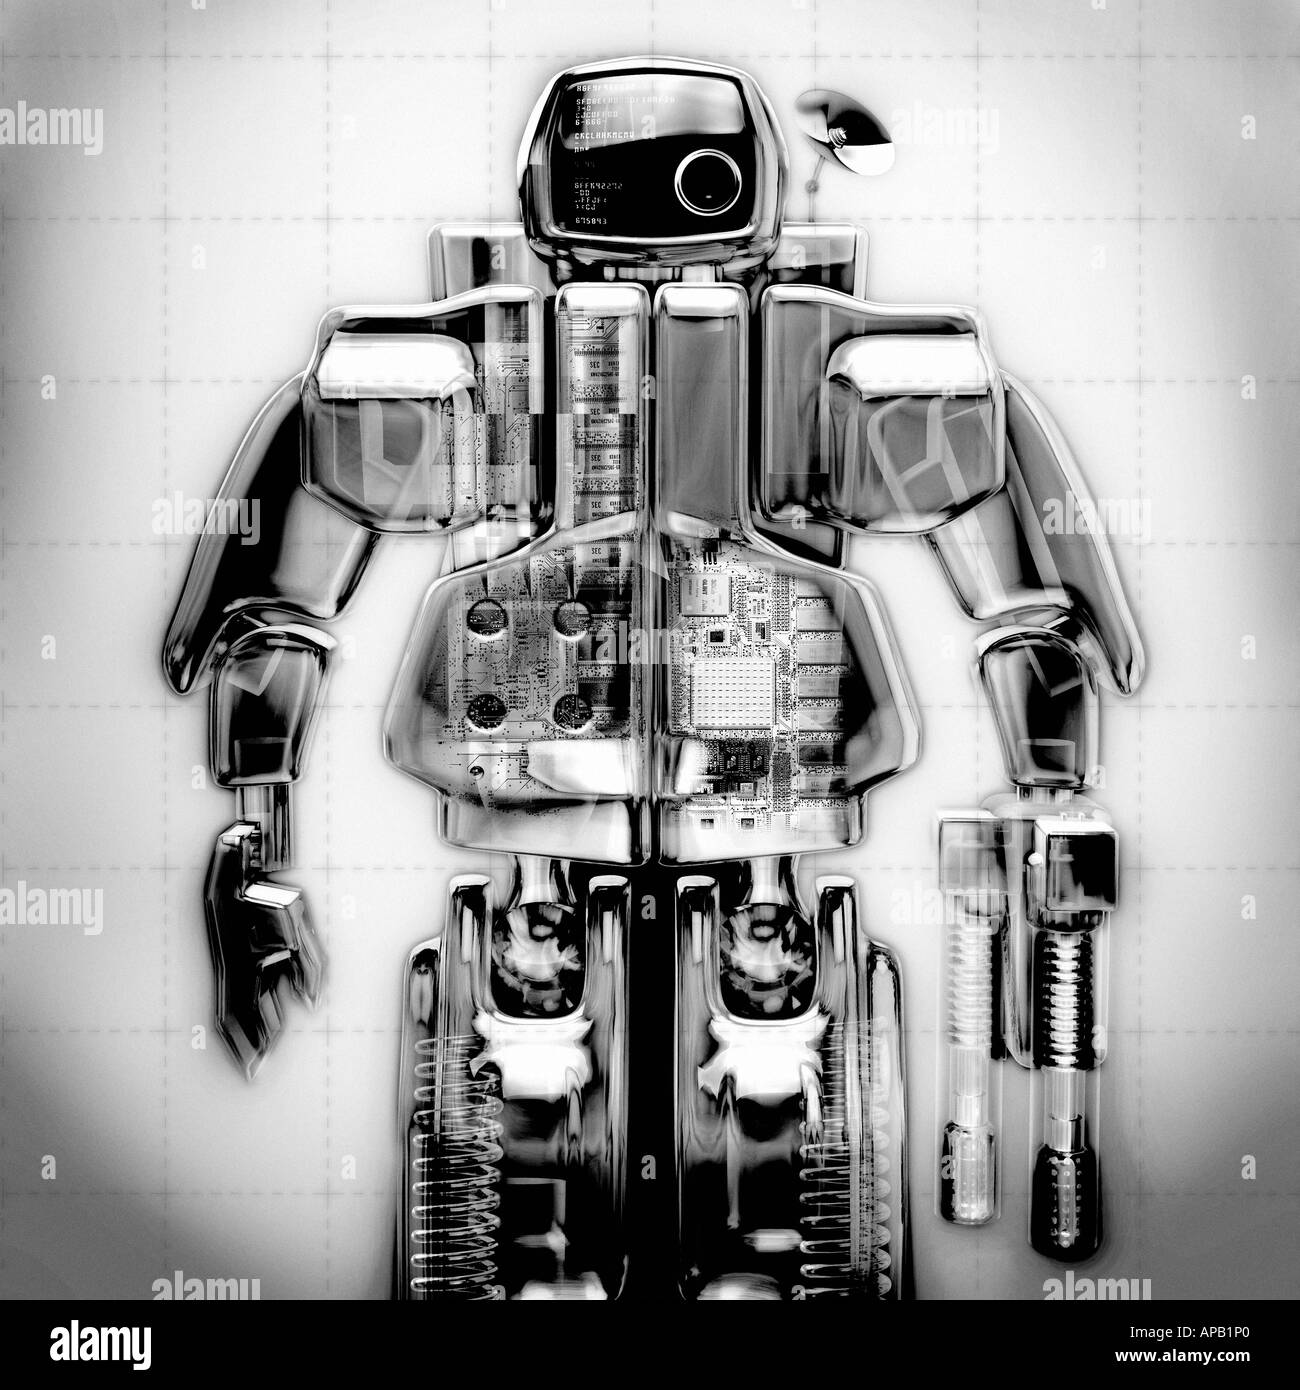 Computer generated image of a black and white robot - Stock Image